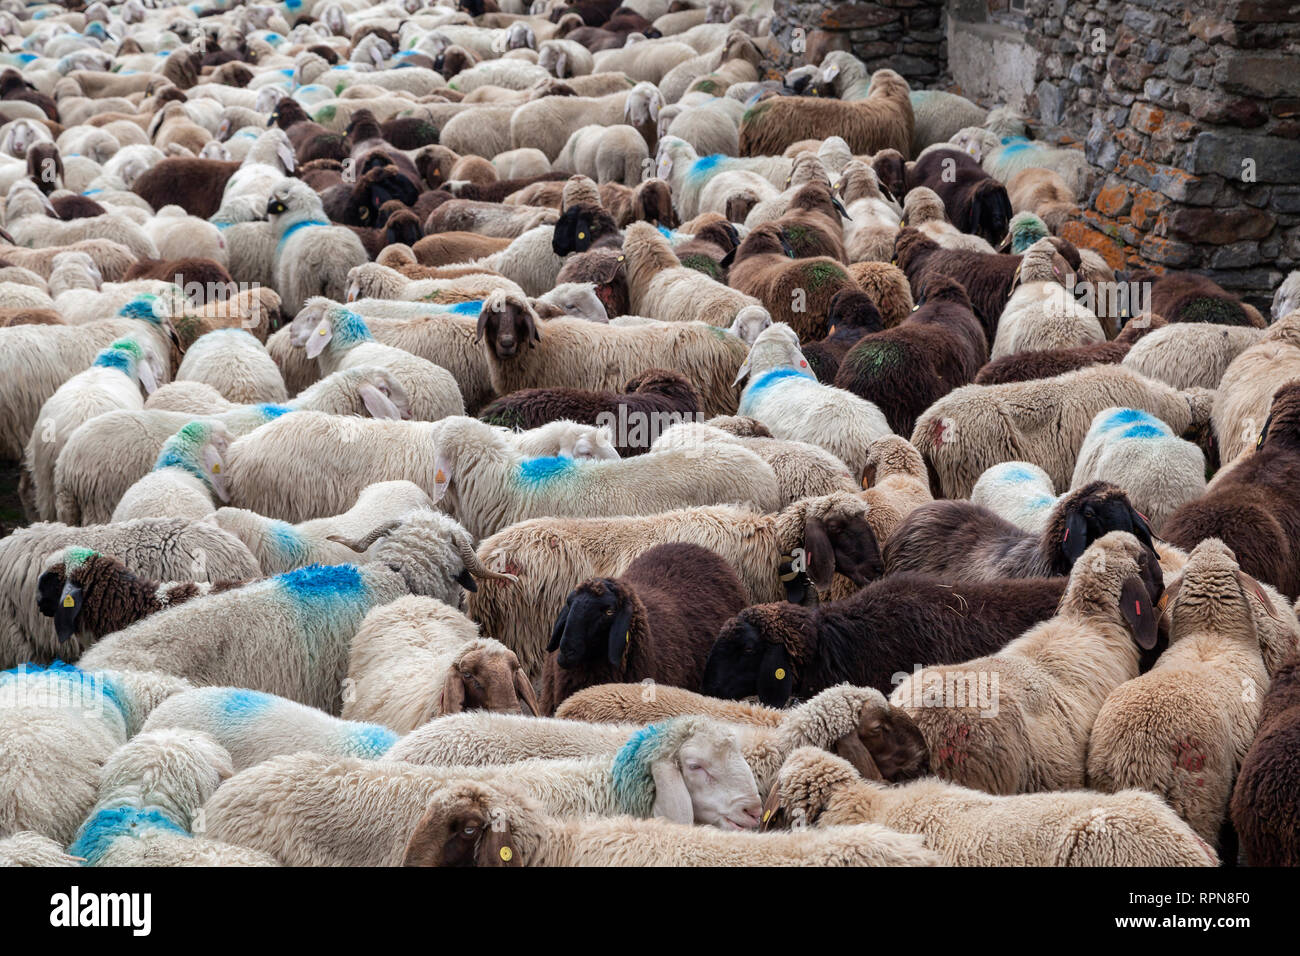 Zoologia / animali, mammifero / di mammifero, il movimento verso il basso di Val Schlandraun, cattle drive della Laaser s, Additional-Rights-Clearance-Info-Not-Available Immagini Stock